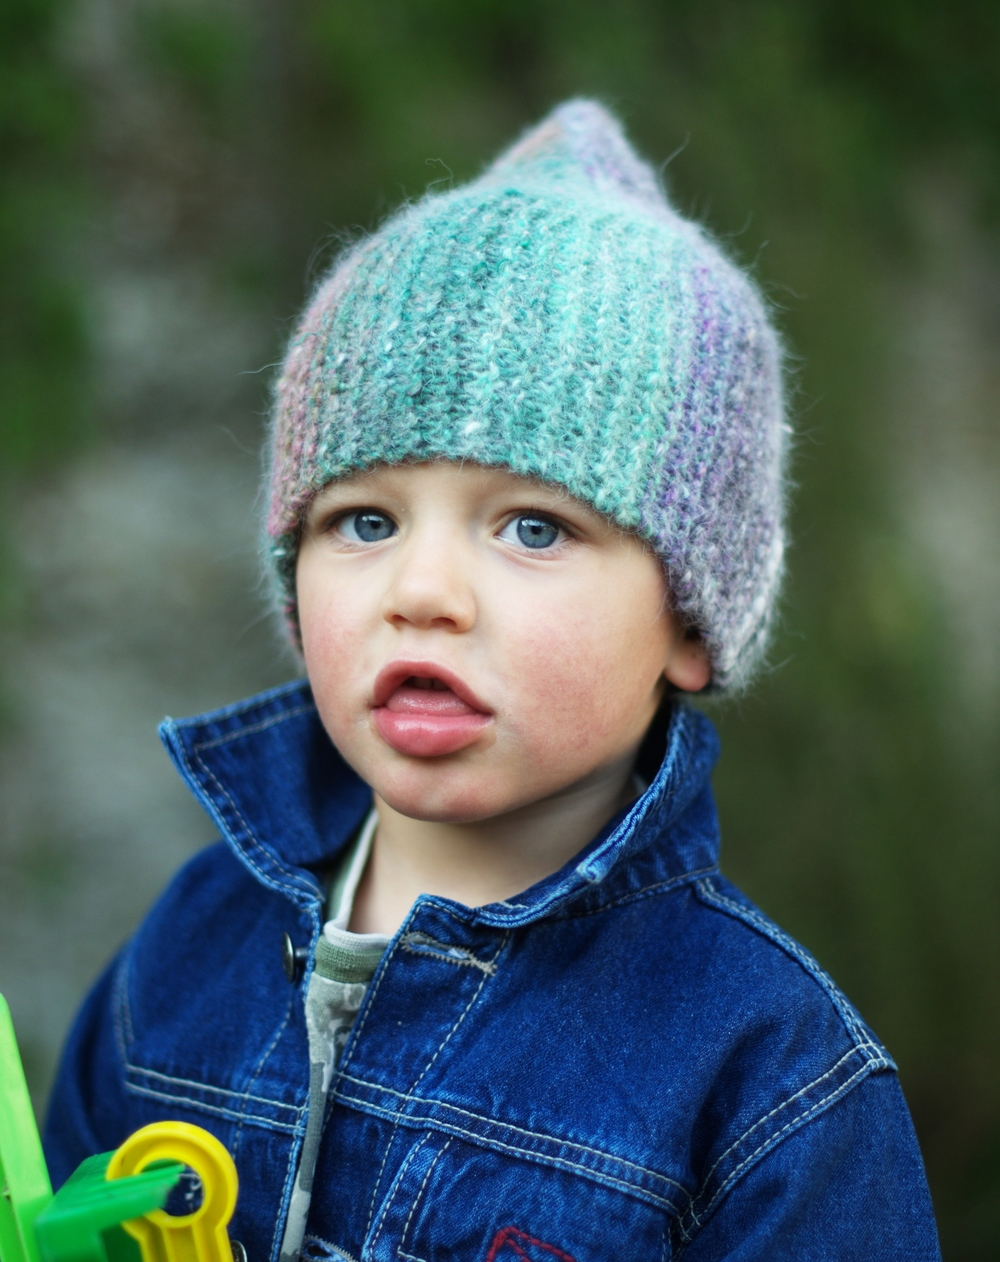 Rocketeer sideways knit childs pixie Hat knitting pattern